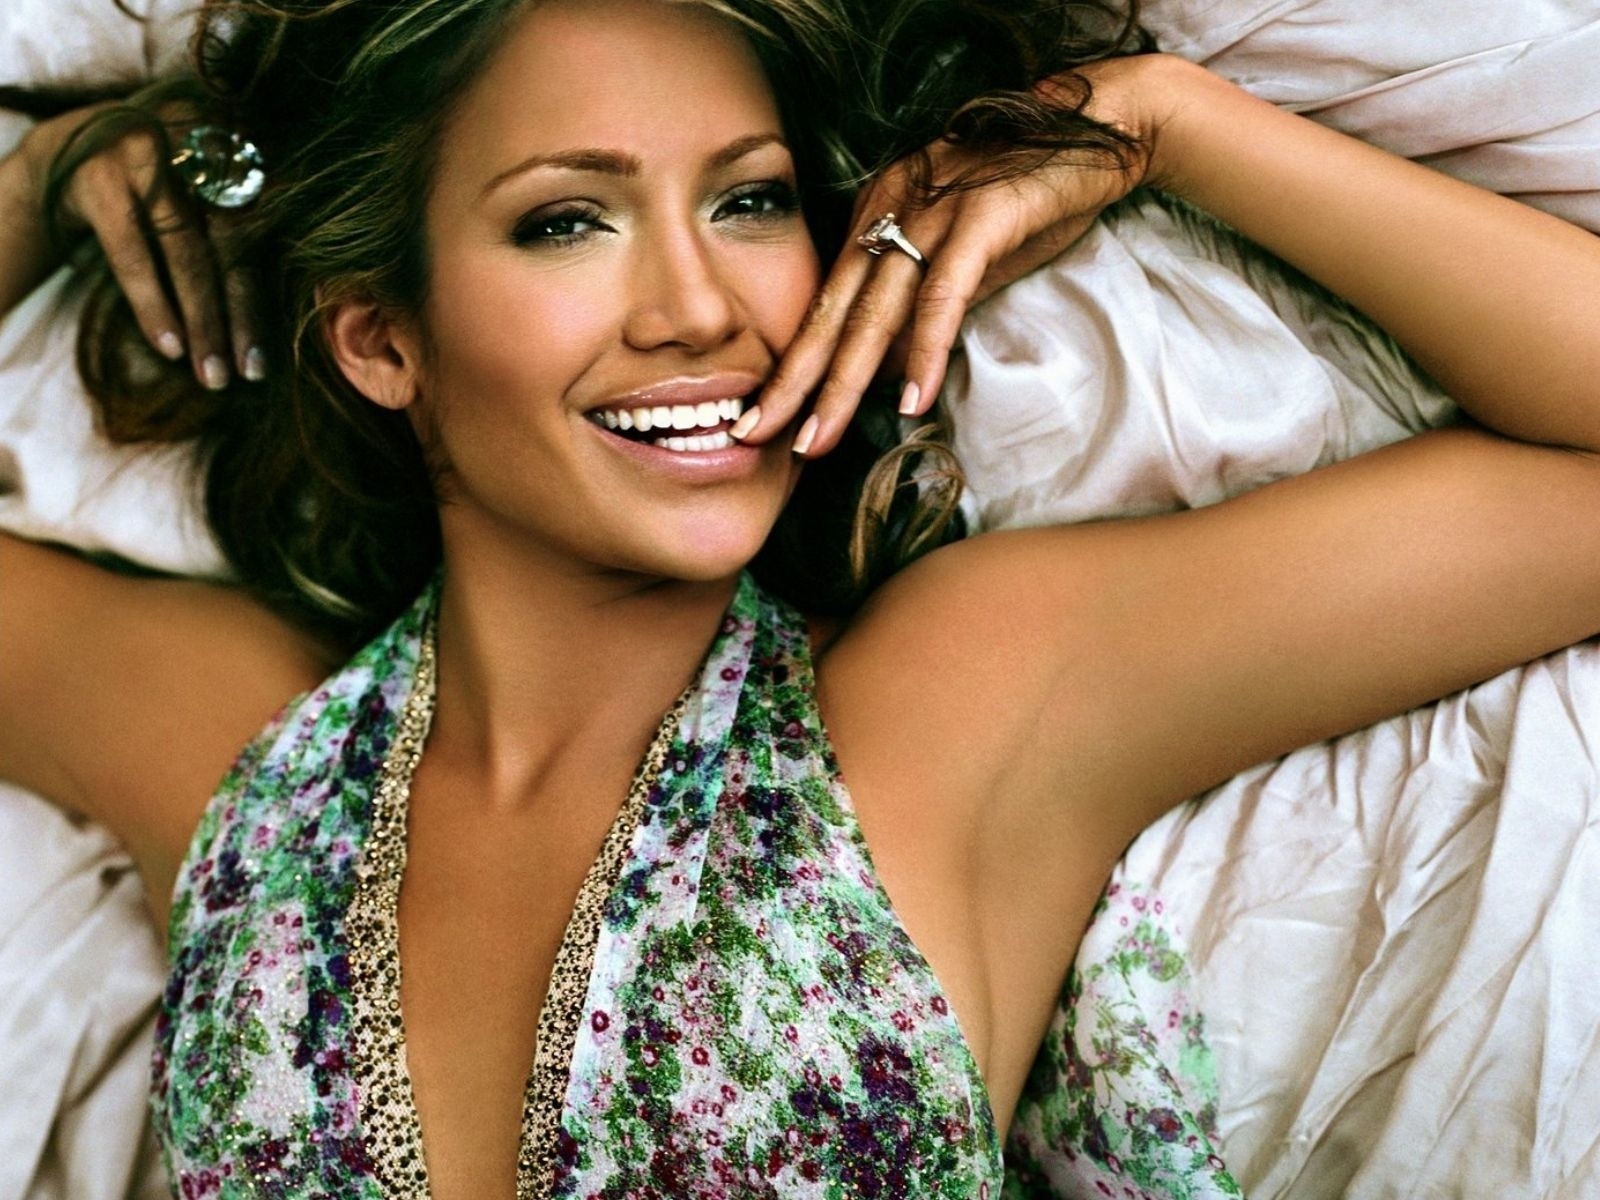 The Nices Wallpapers Jennifer Lopez Hd Wallpapers-3723